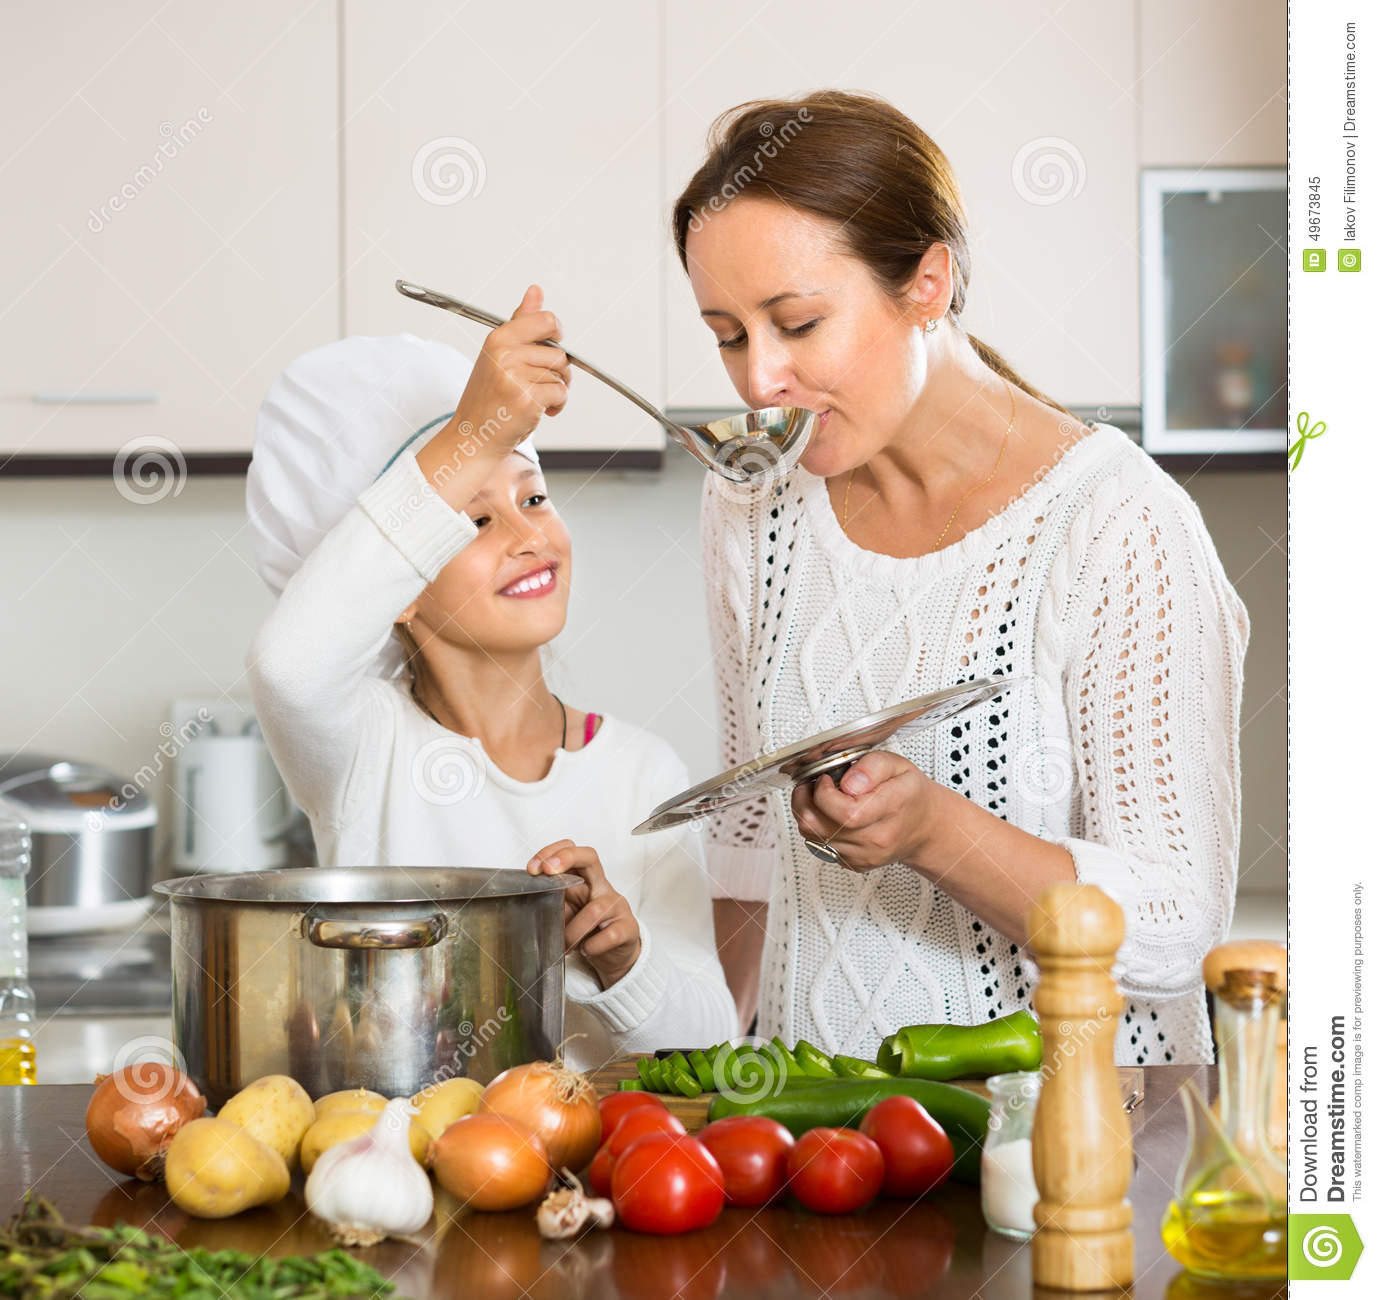 Smiling Girl And Mom At Kitchen Stock Image - Image of ladle ...